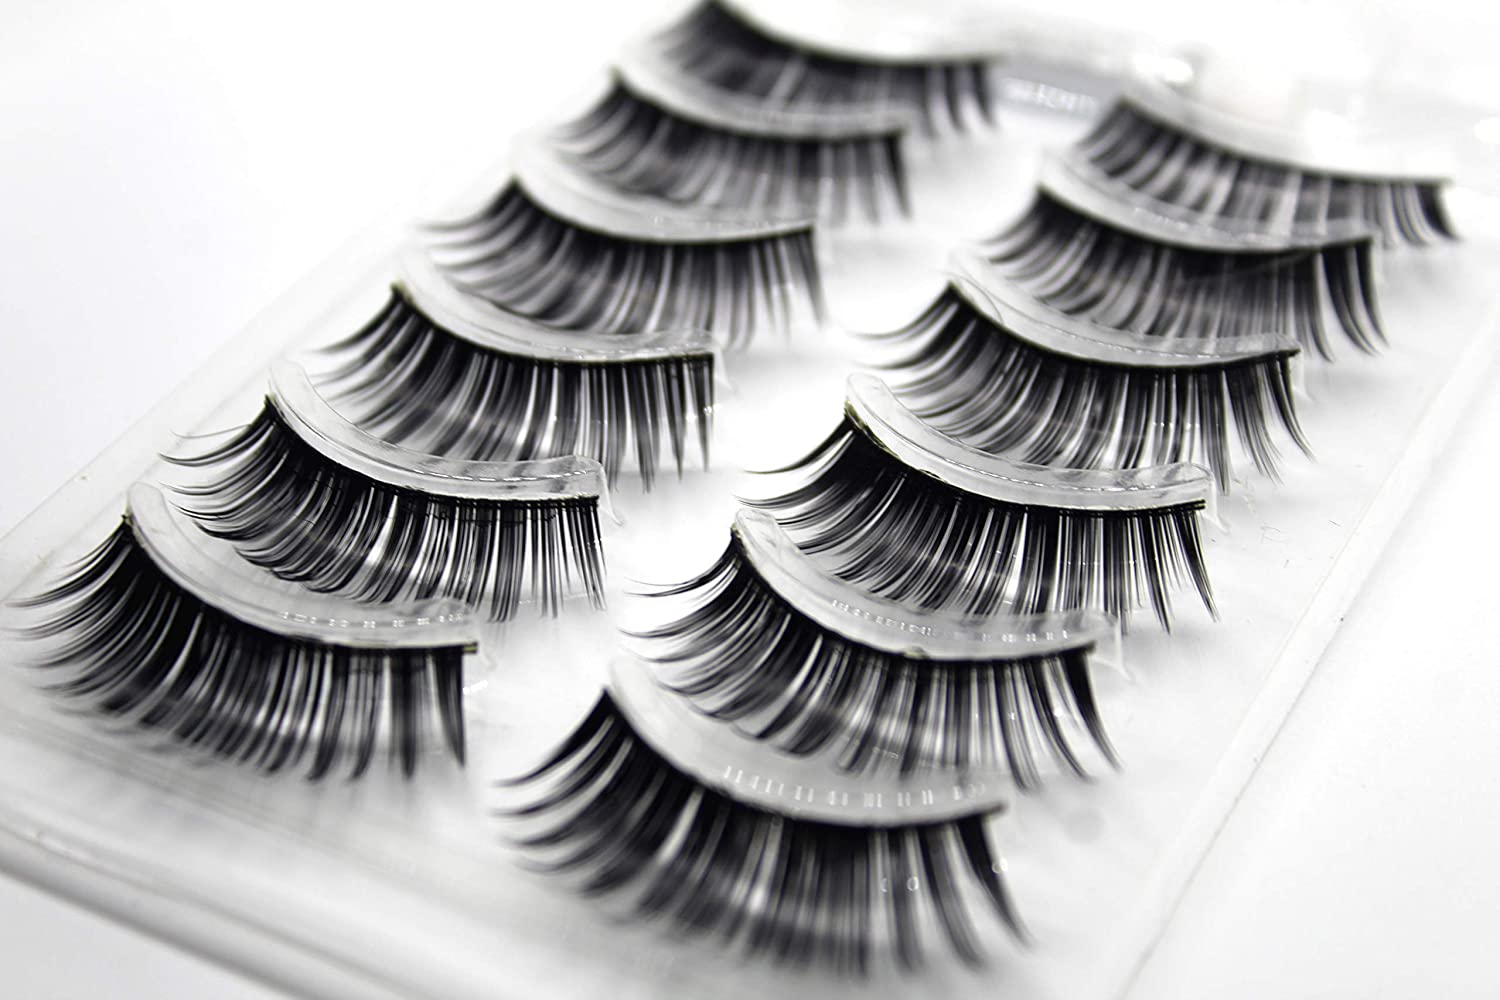 c37e537a727 SoSh Imported False EyeLashes 1 Box 6 Pairs(Total 6 Pair) Thick Black False Eyelashes  Makeup Tips Natural Smoky Makeup Long Fake HandMade Eye Lashes 6 Pair ...